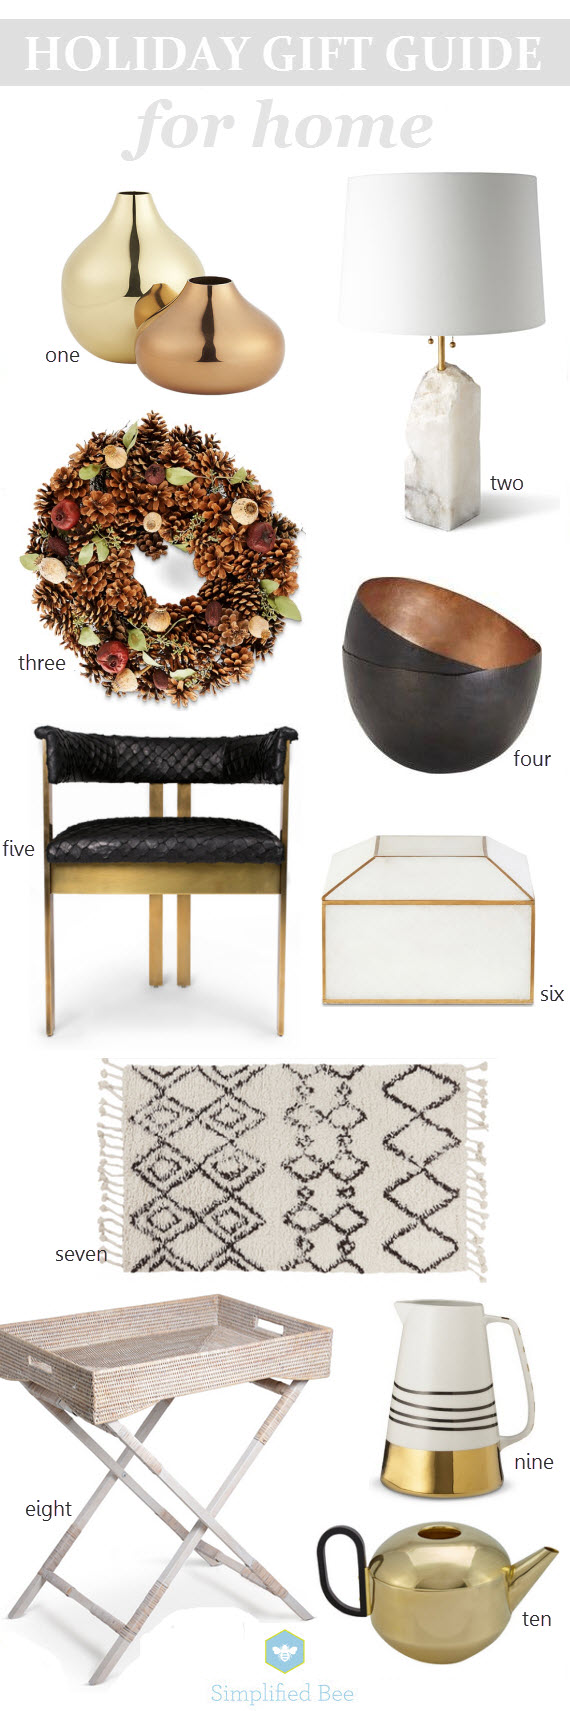 holiday gift guide 2014 // for the home // simplified bee #holiday2014 #giftguide